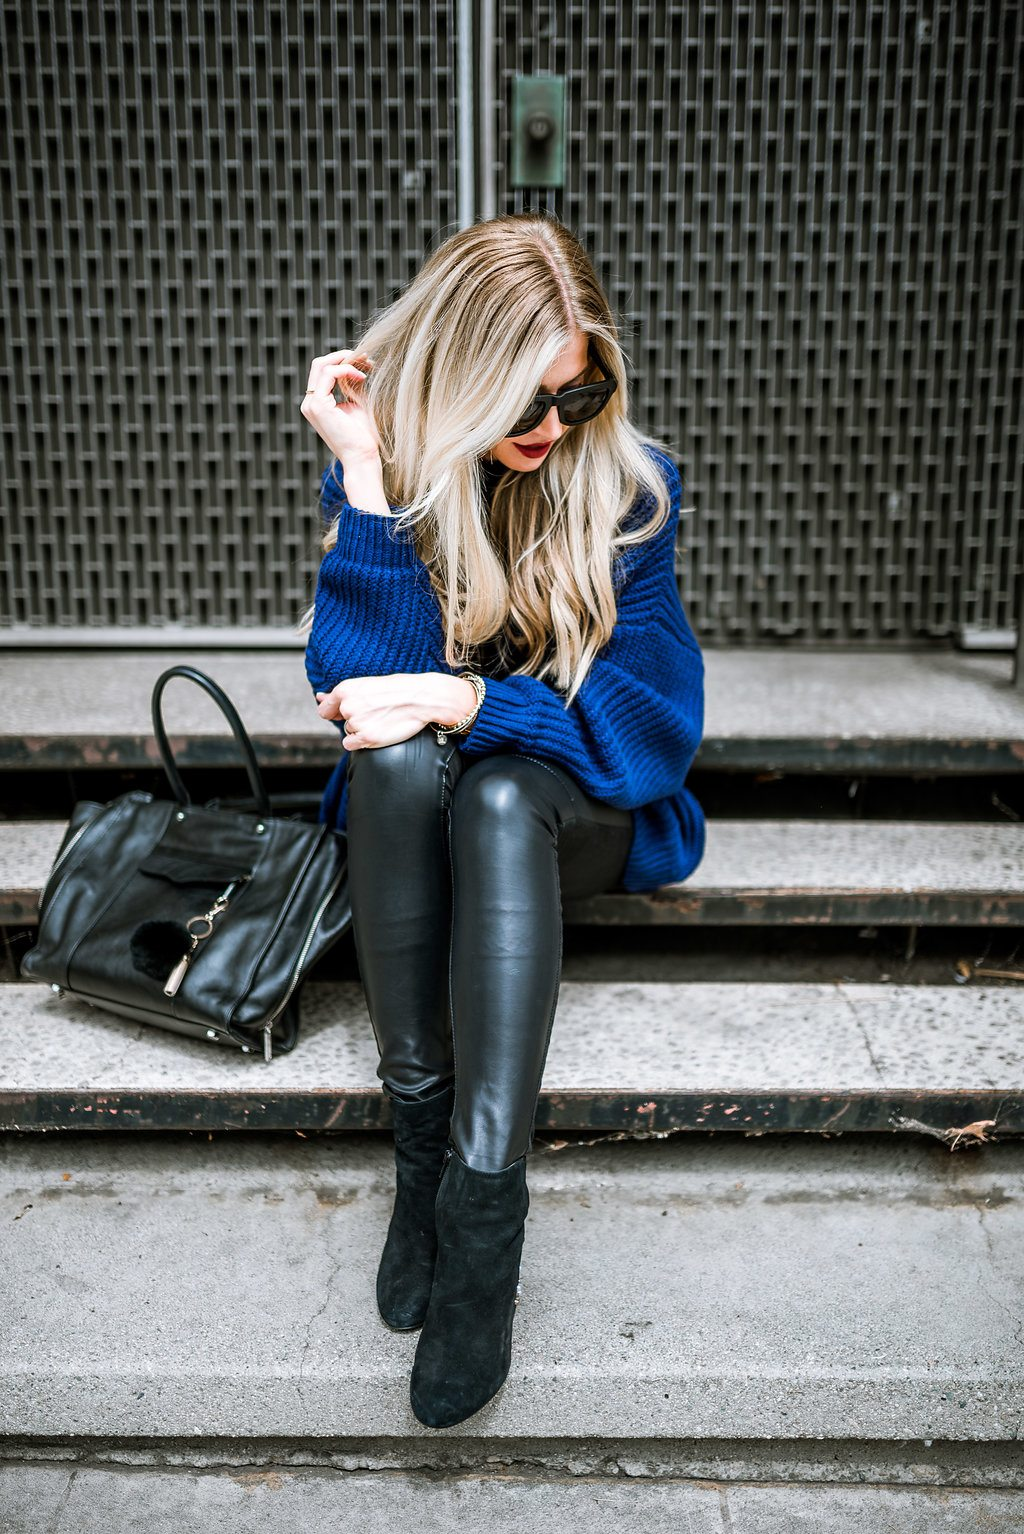 ROYAL BLUE SWEATER FOR FALL